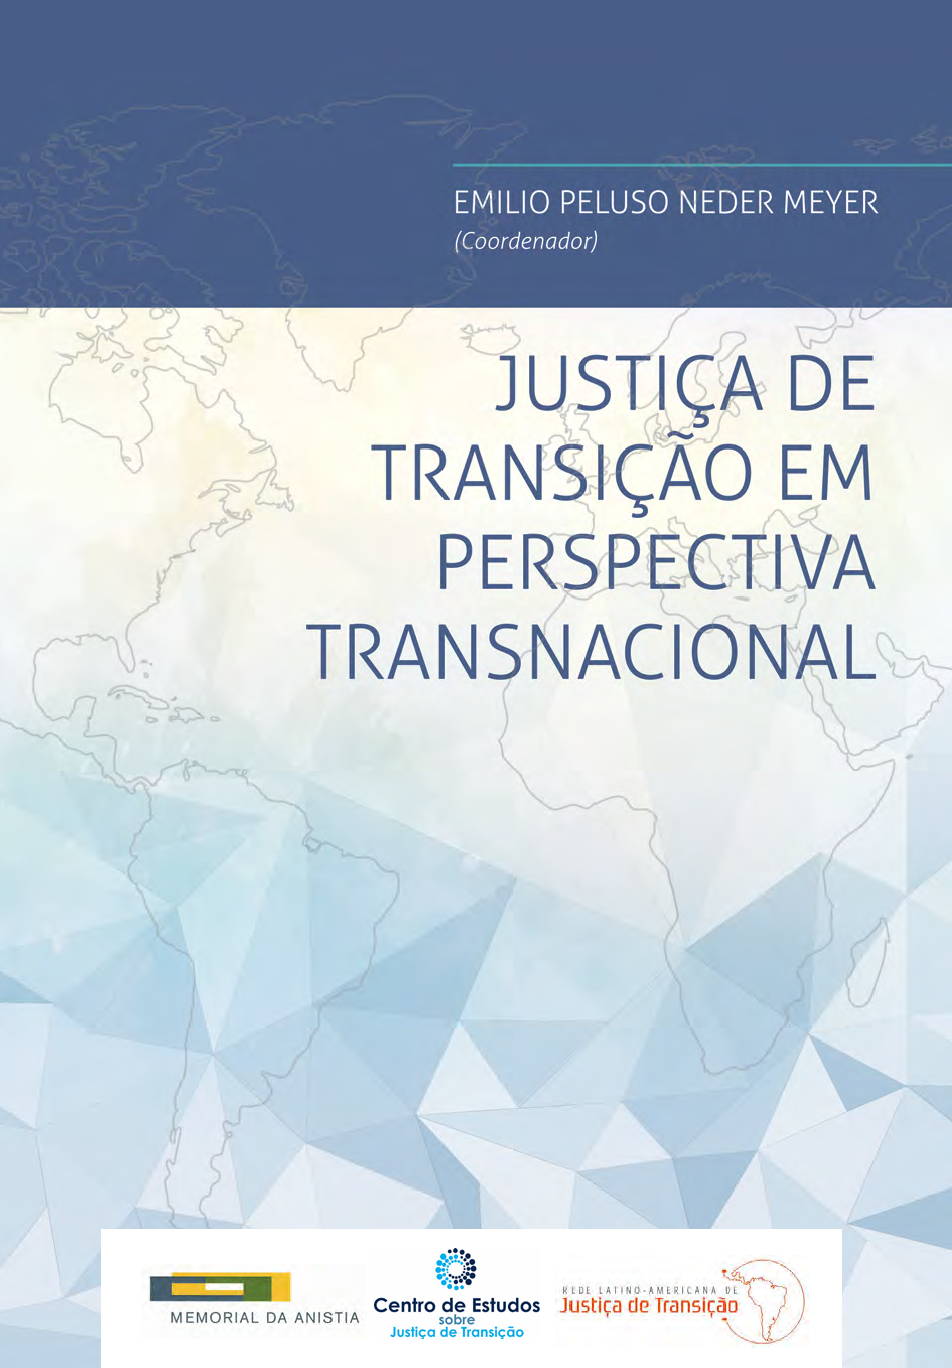 CAPA - Emilio Meyer - JT perspectiva transnacional 2017.png